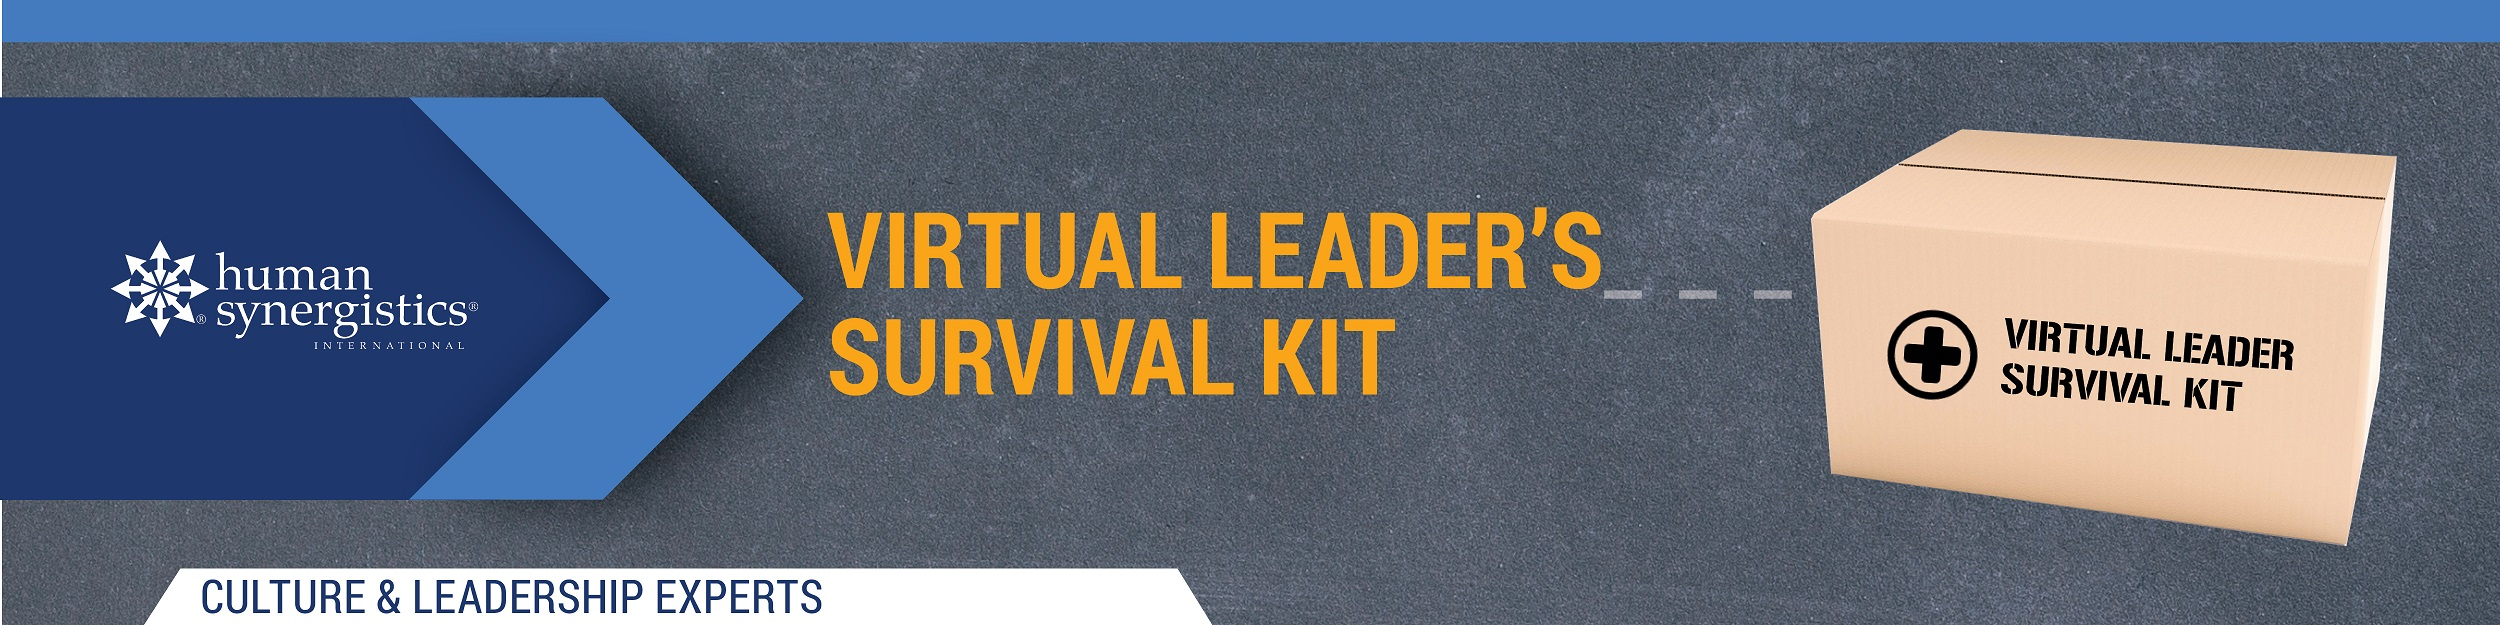 Virtual Leader Survival Kit website banner sm